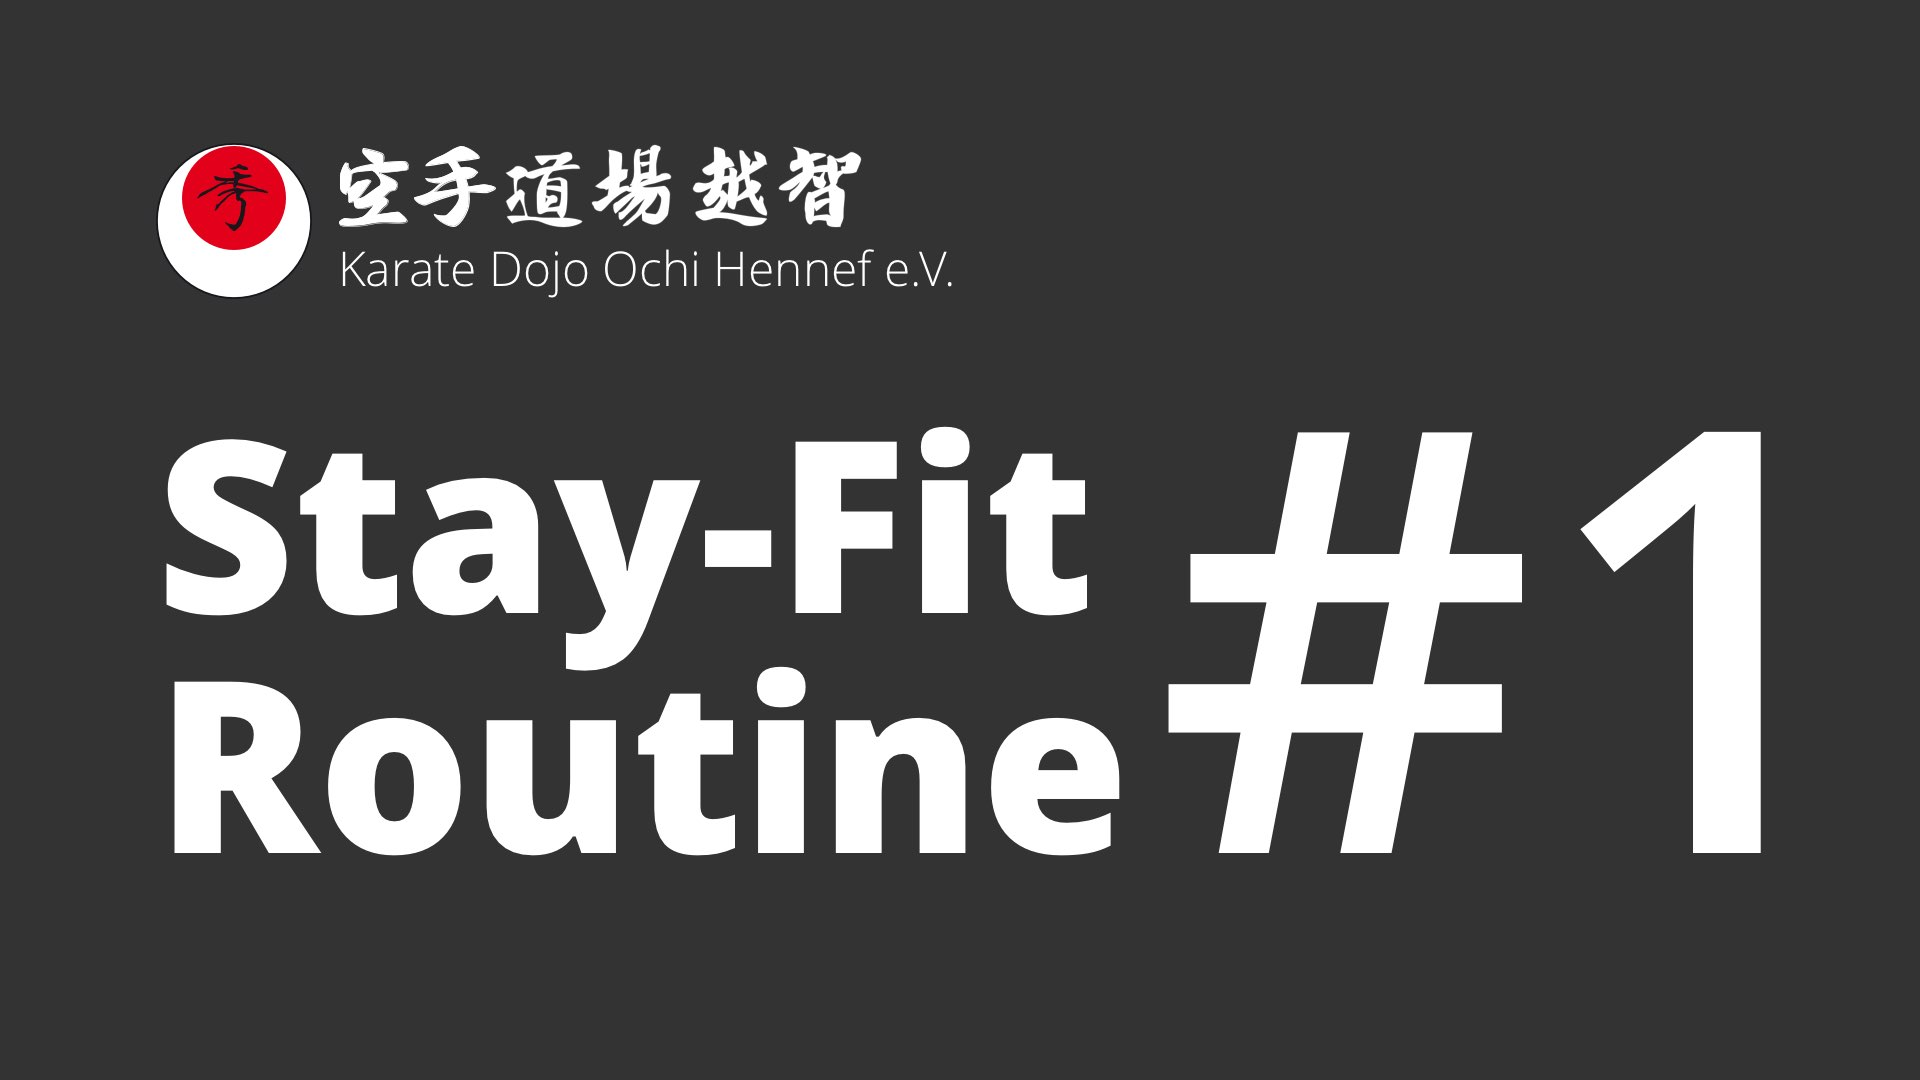 1. Stay-Fit-Routine